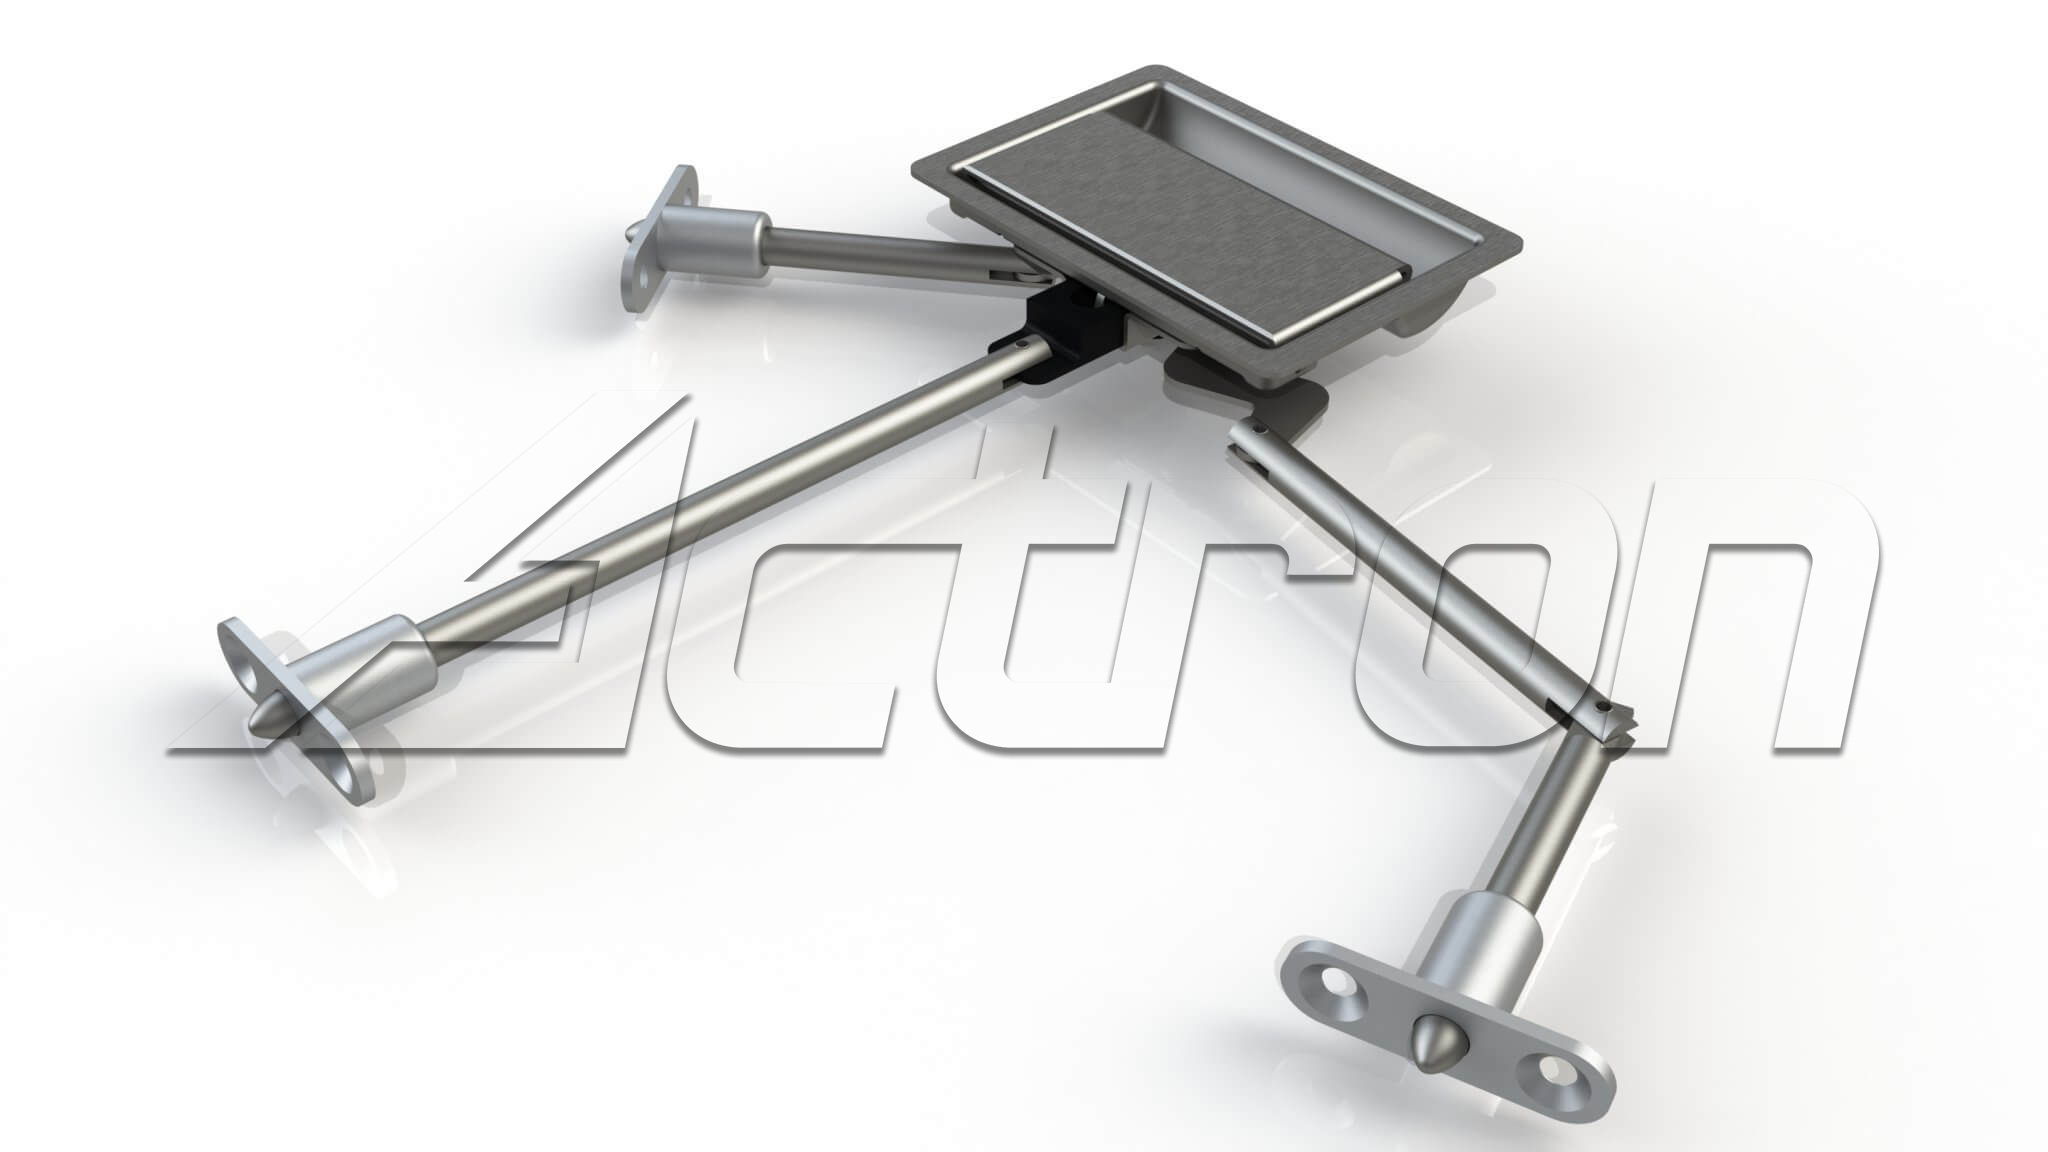 door-bolting-system-8211-paddle-3997-a39052.jpg